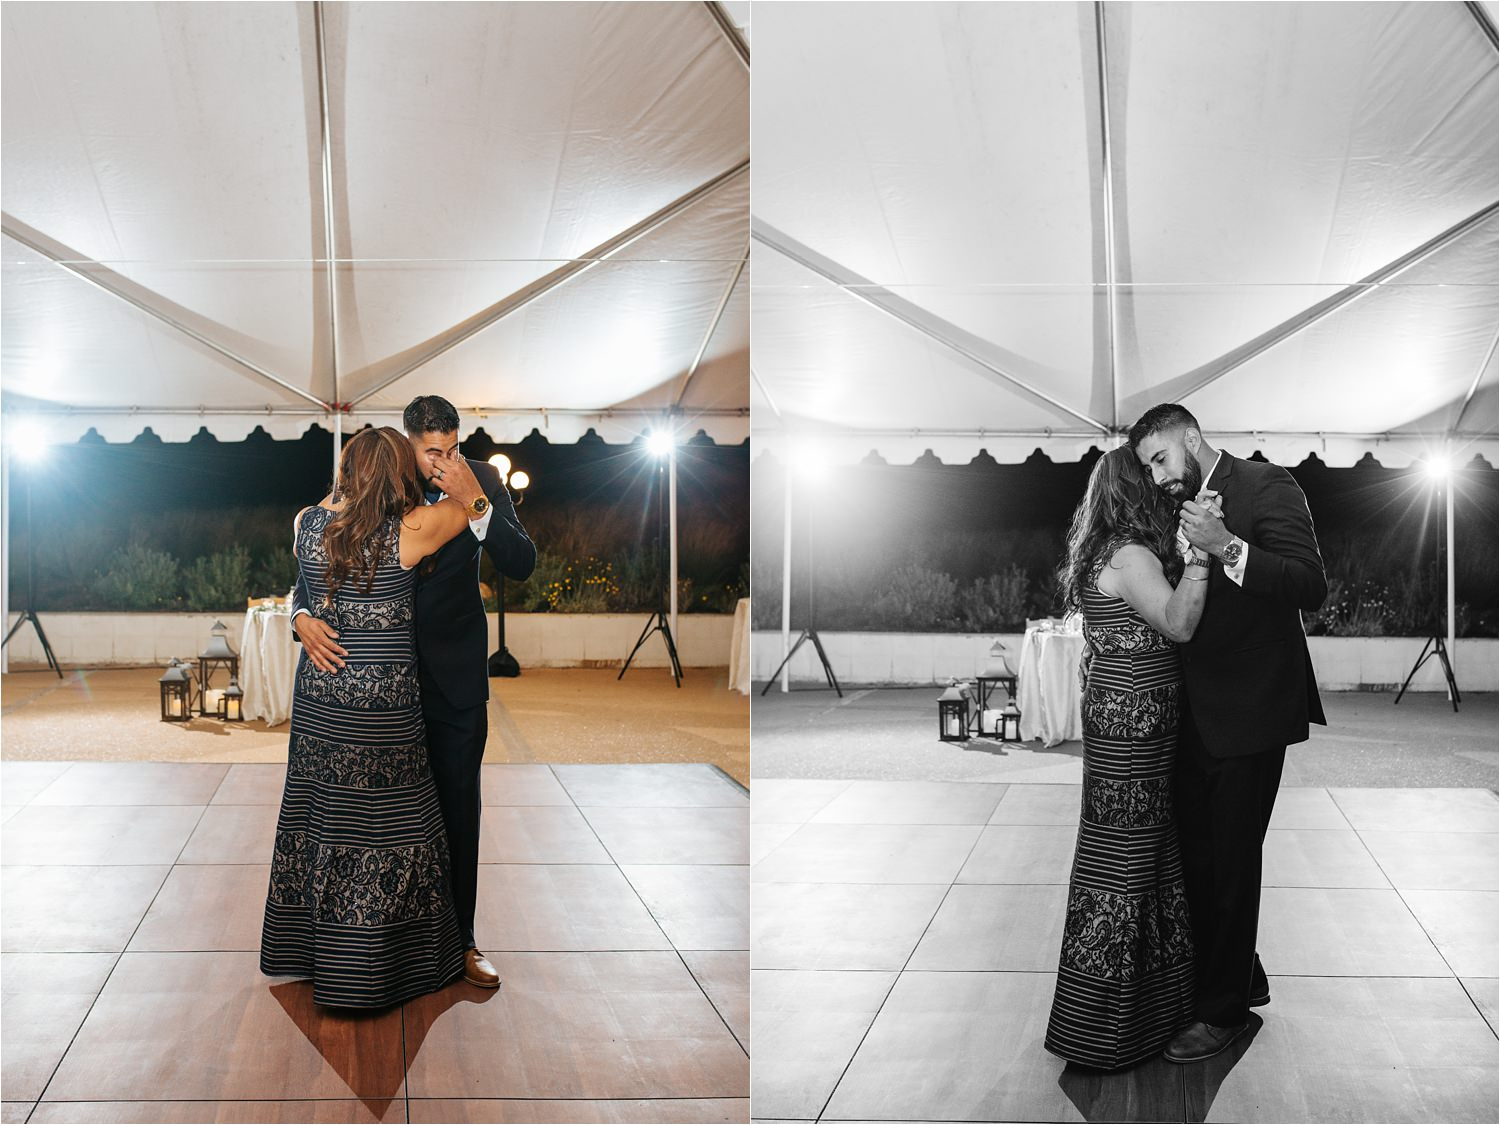 Son dances with his mom at reception - http://brittneyhannonphotography.com